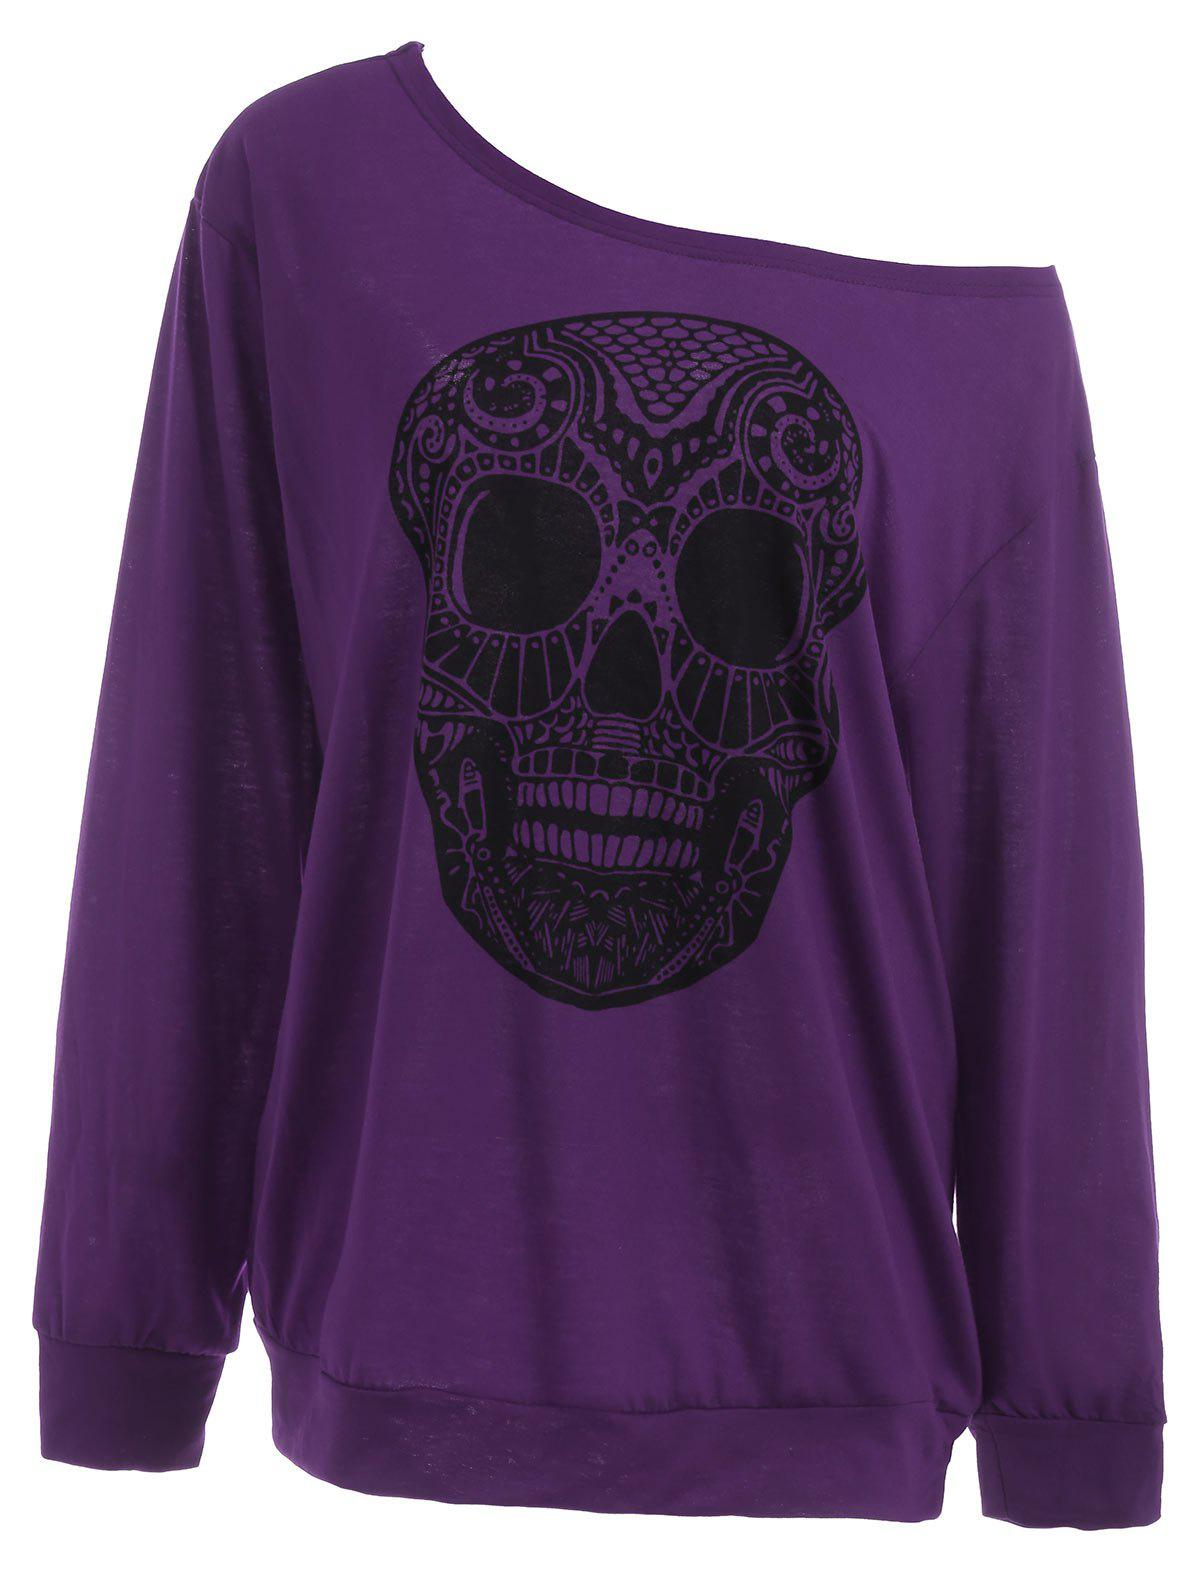 Plus Size Skull Skew Collar SweatshirtWOMEN<br><br>Size: 2XL; Color: PURPLE; Material: Polyester,Spandex; Shirt Length: Long; Sleeve Length: Full; Style: Casual; Pattern Style: Skulls; Season: Fall,Spring; Weight: 0.3700kg; Package Contents: 1 x Sweatshirt;